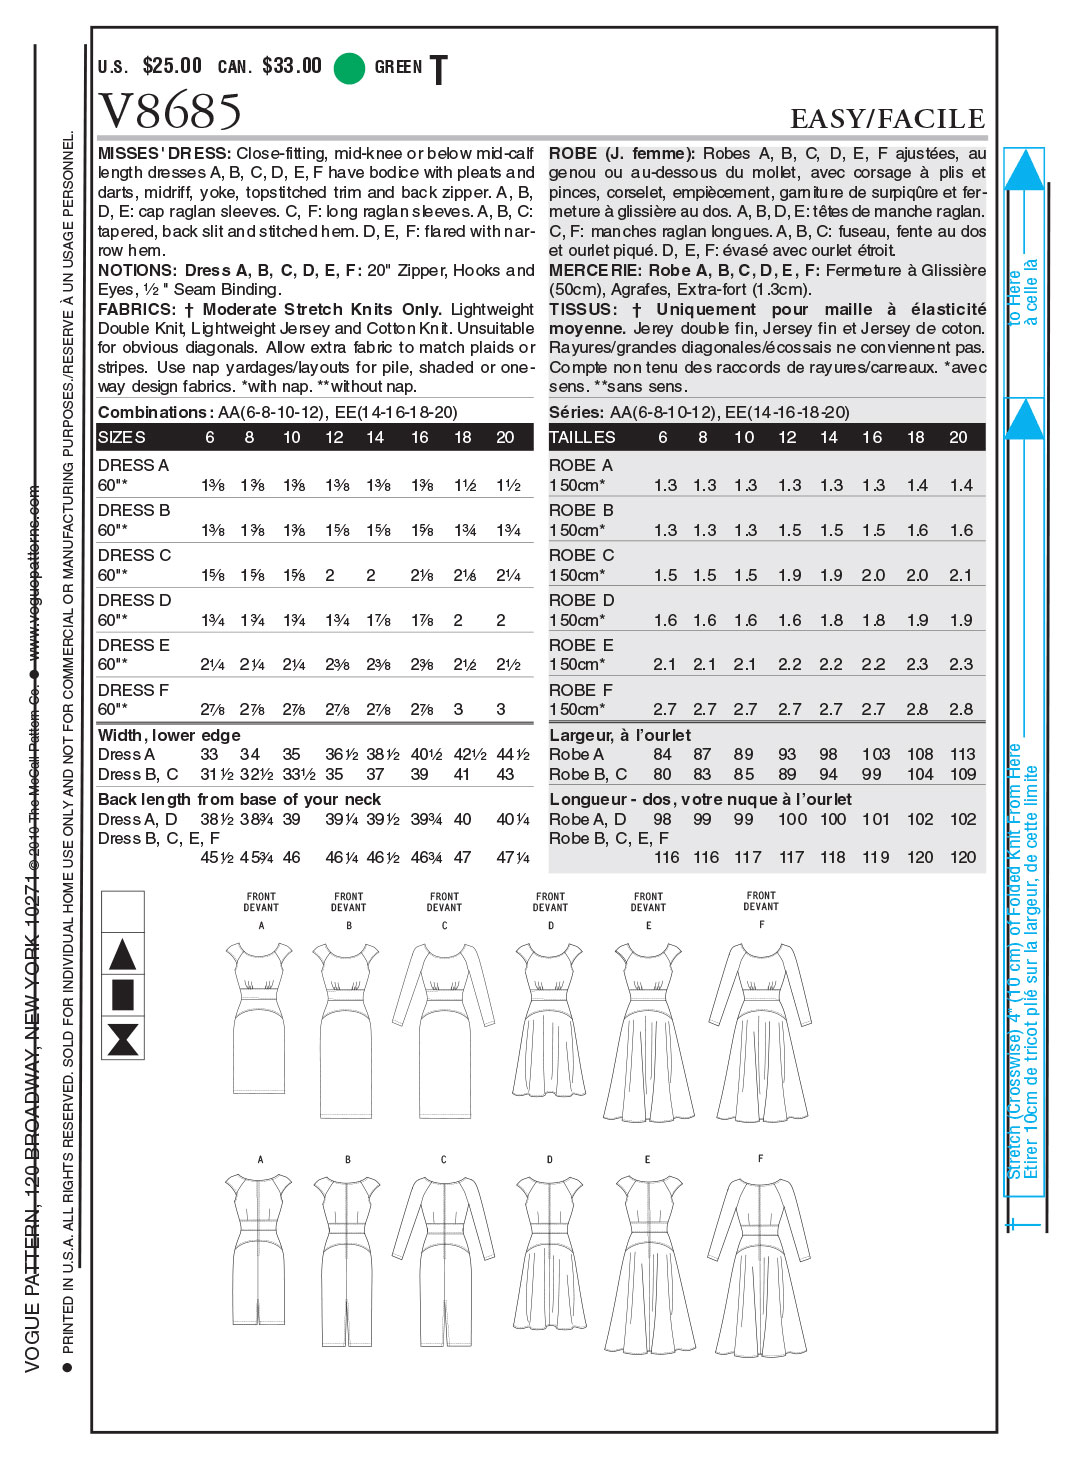 Vogue Patterns Misses Dress-V8685